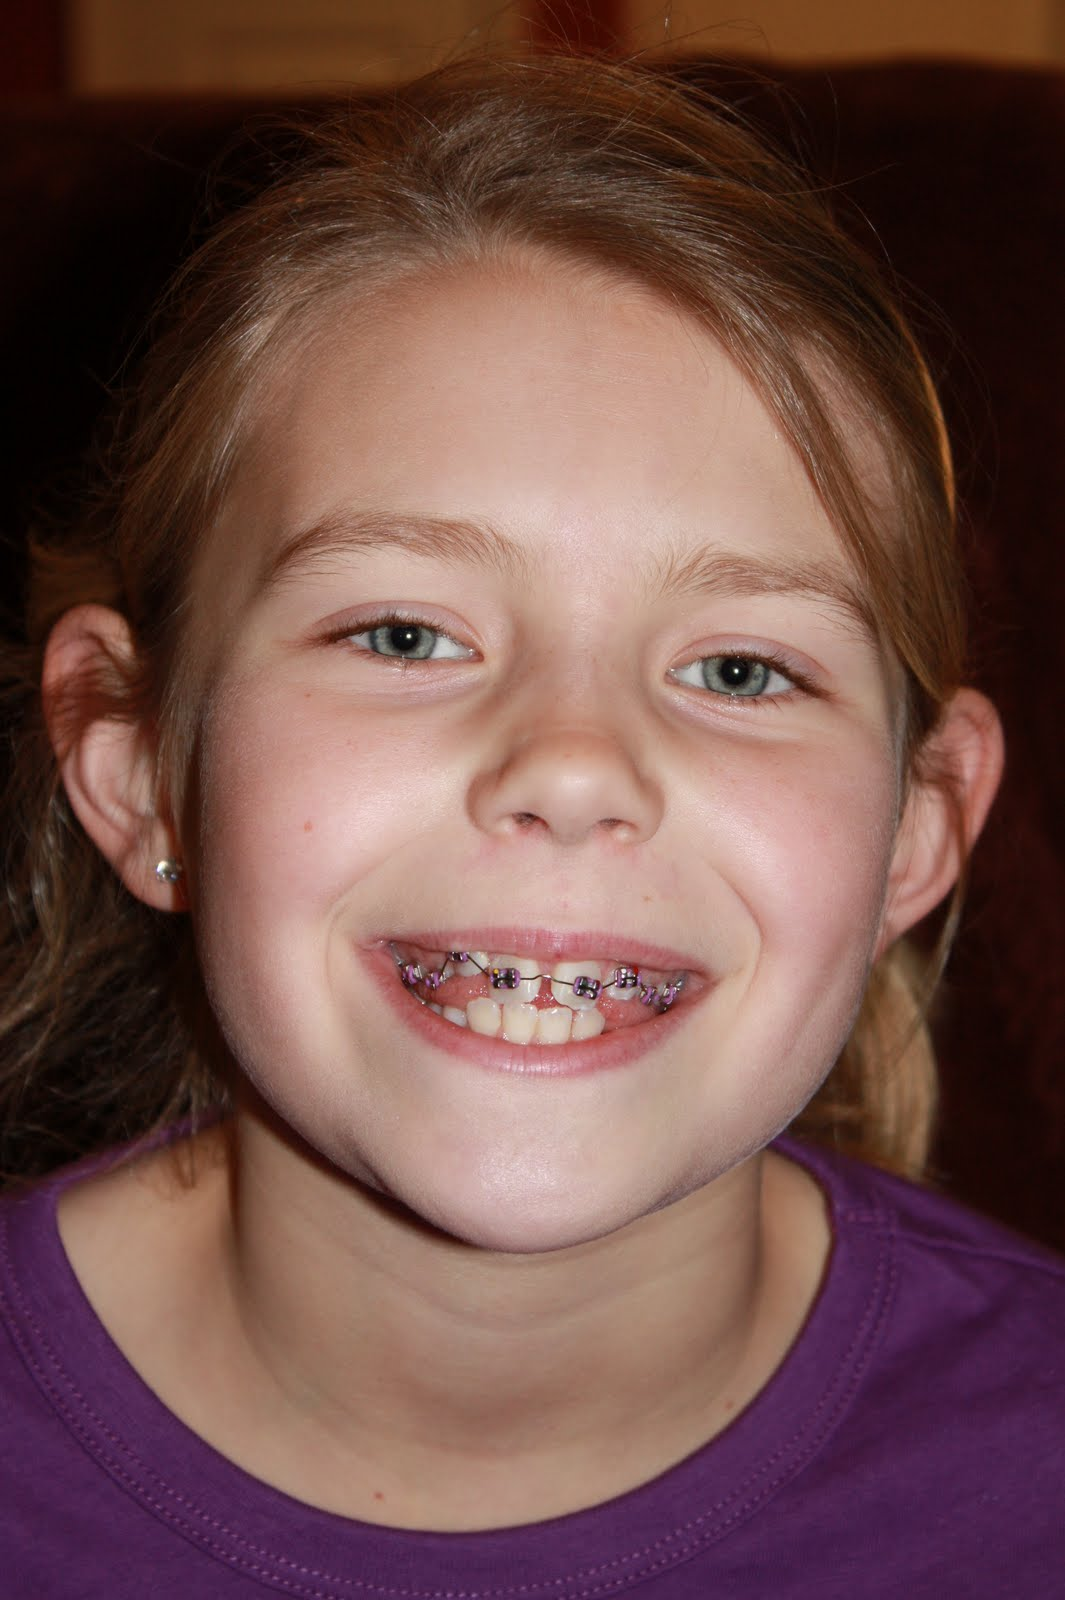 how to smile with braces for picture day